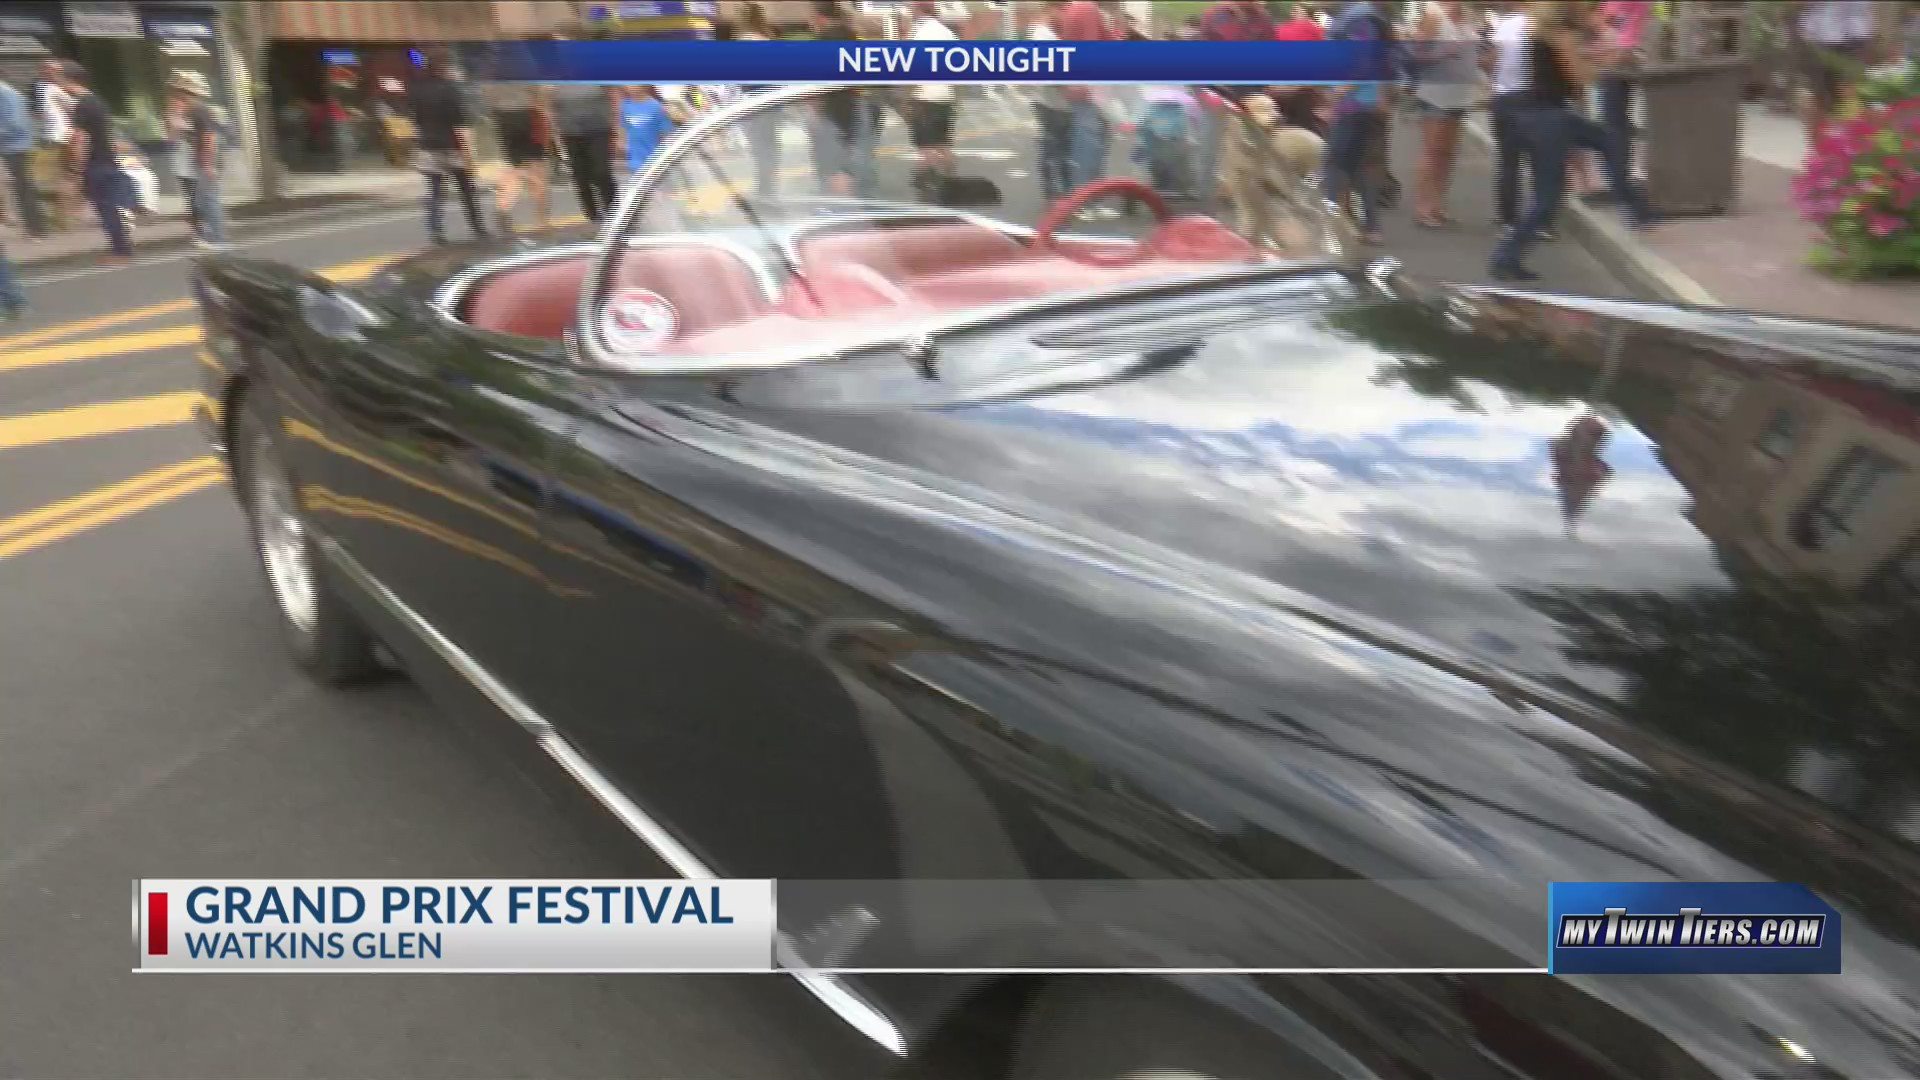 Grand Prix Festival a hit, Watkins Glen the backdrop